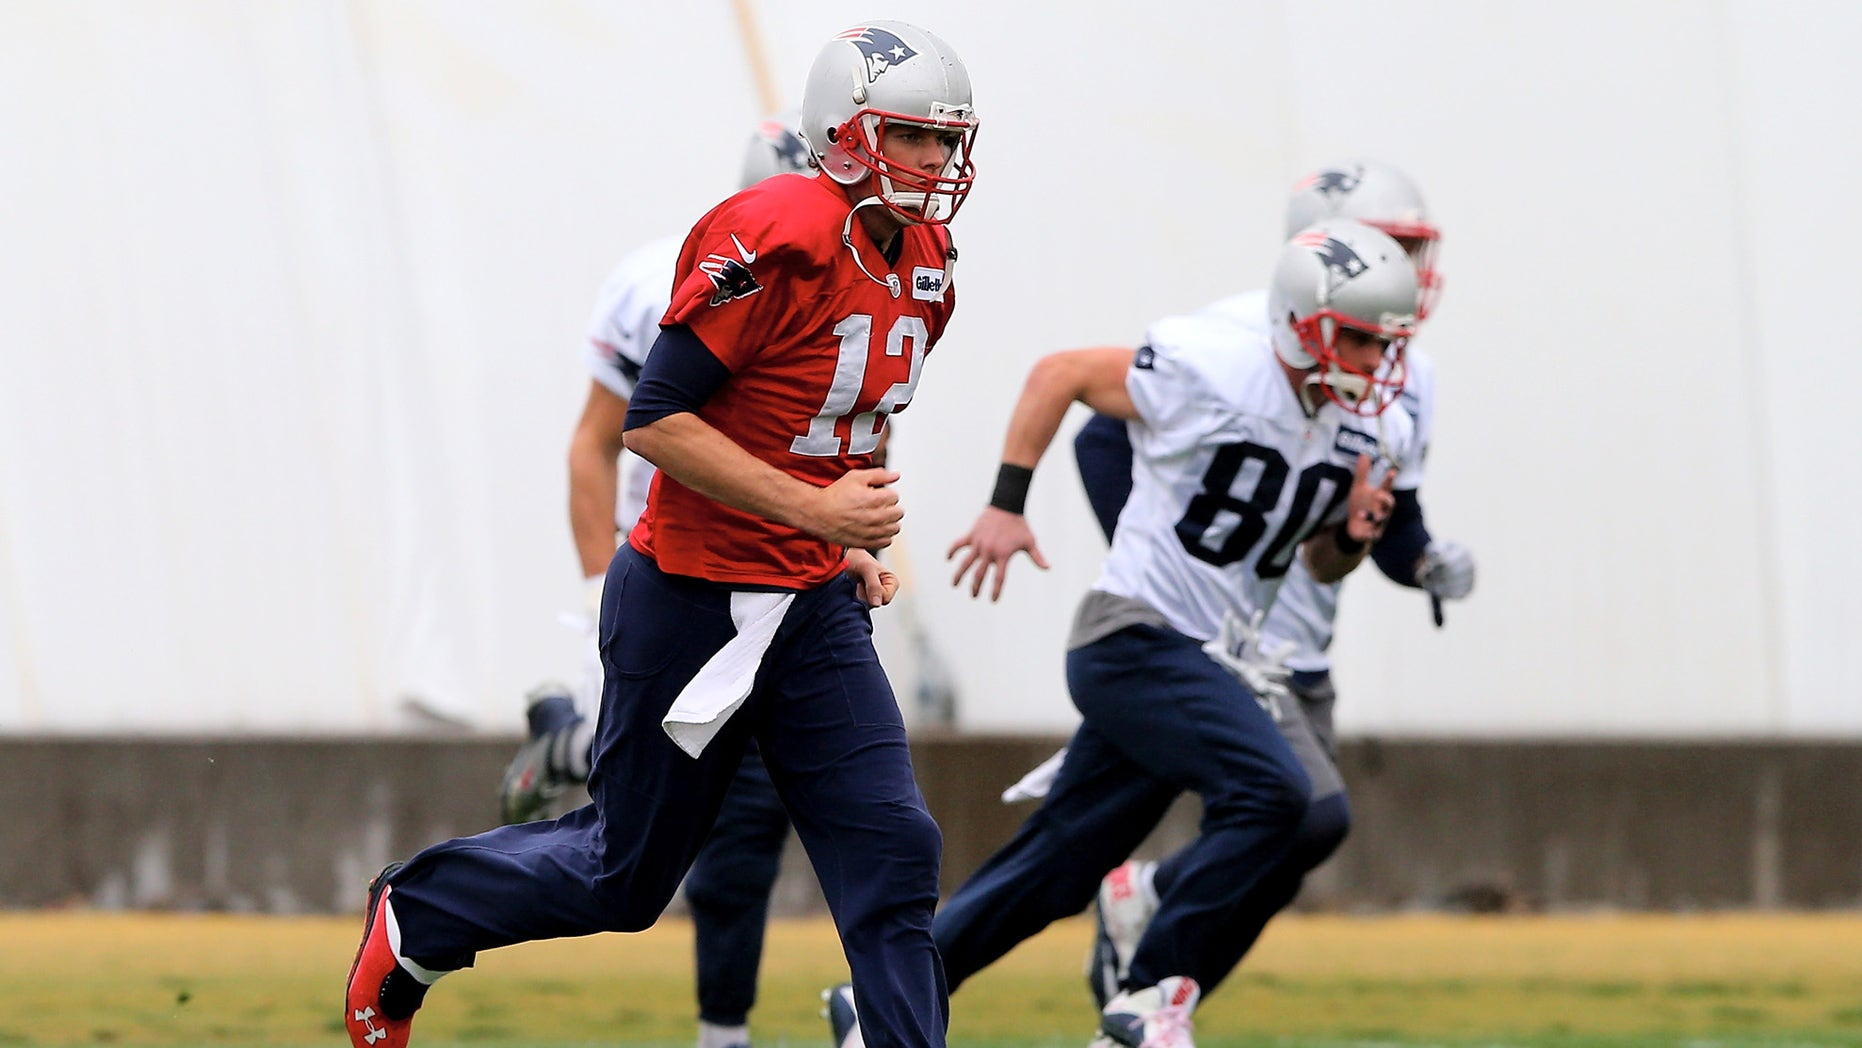 TEMPE, AZ - JANUARY 30:  Tom Brady #12 of the New England Patriots warms up during the New England Patriots Super Bowl XLIX Practice on January 30, 2015 at the Arizona Cardinals Practice Facility in Tempe, Arizona.  (Photo by Elsa/Getty Images)